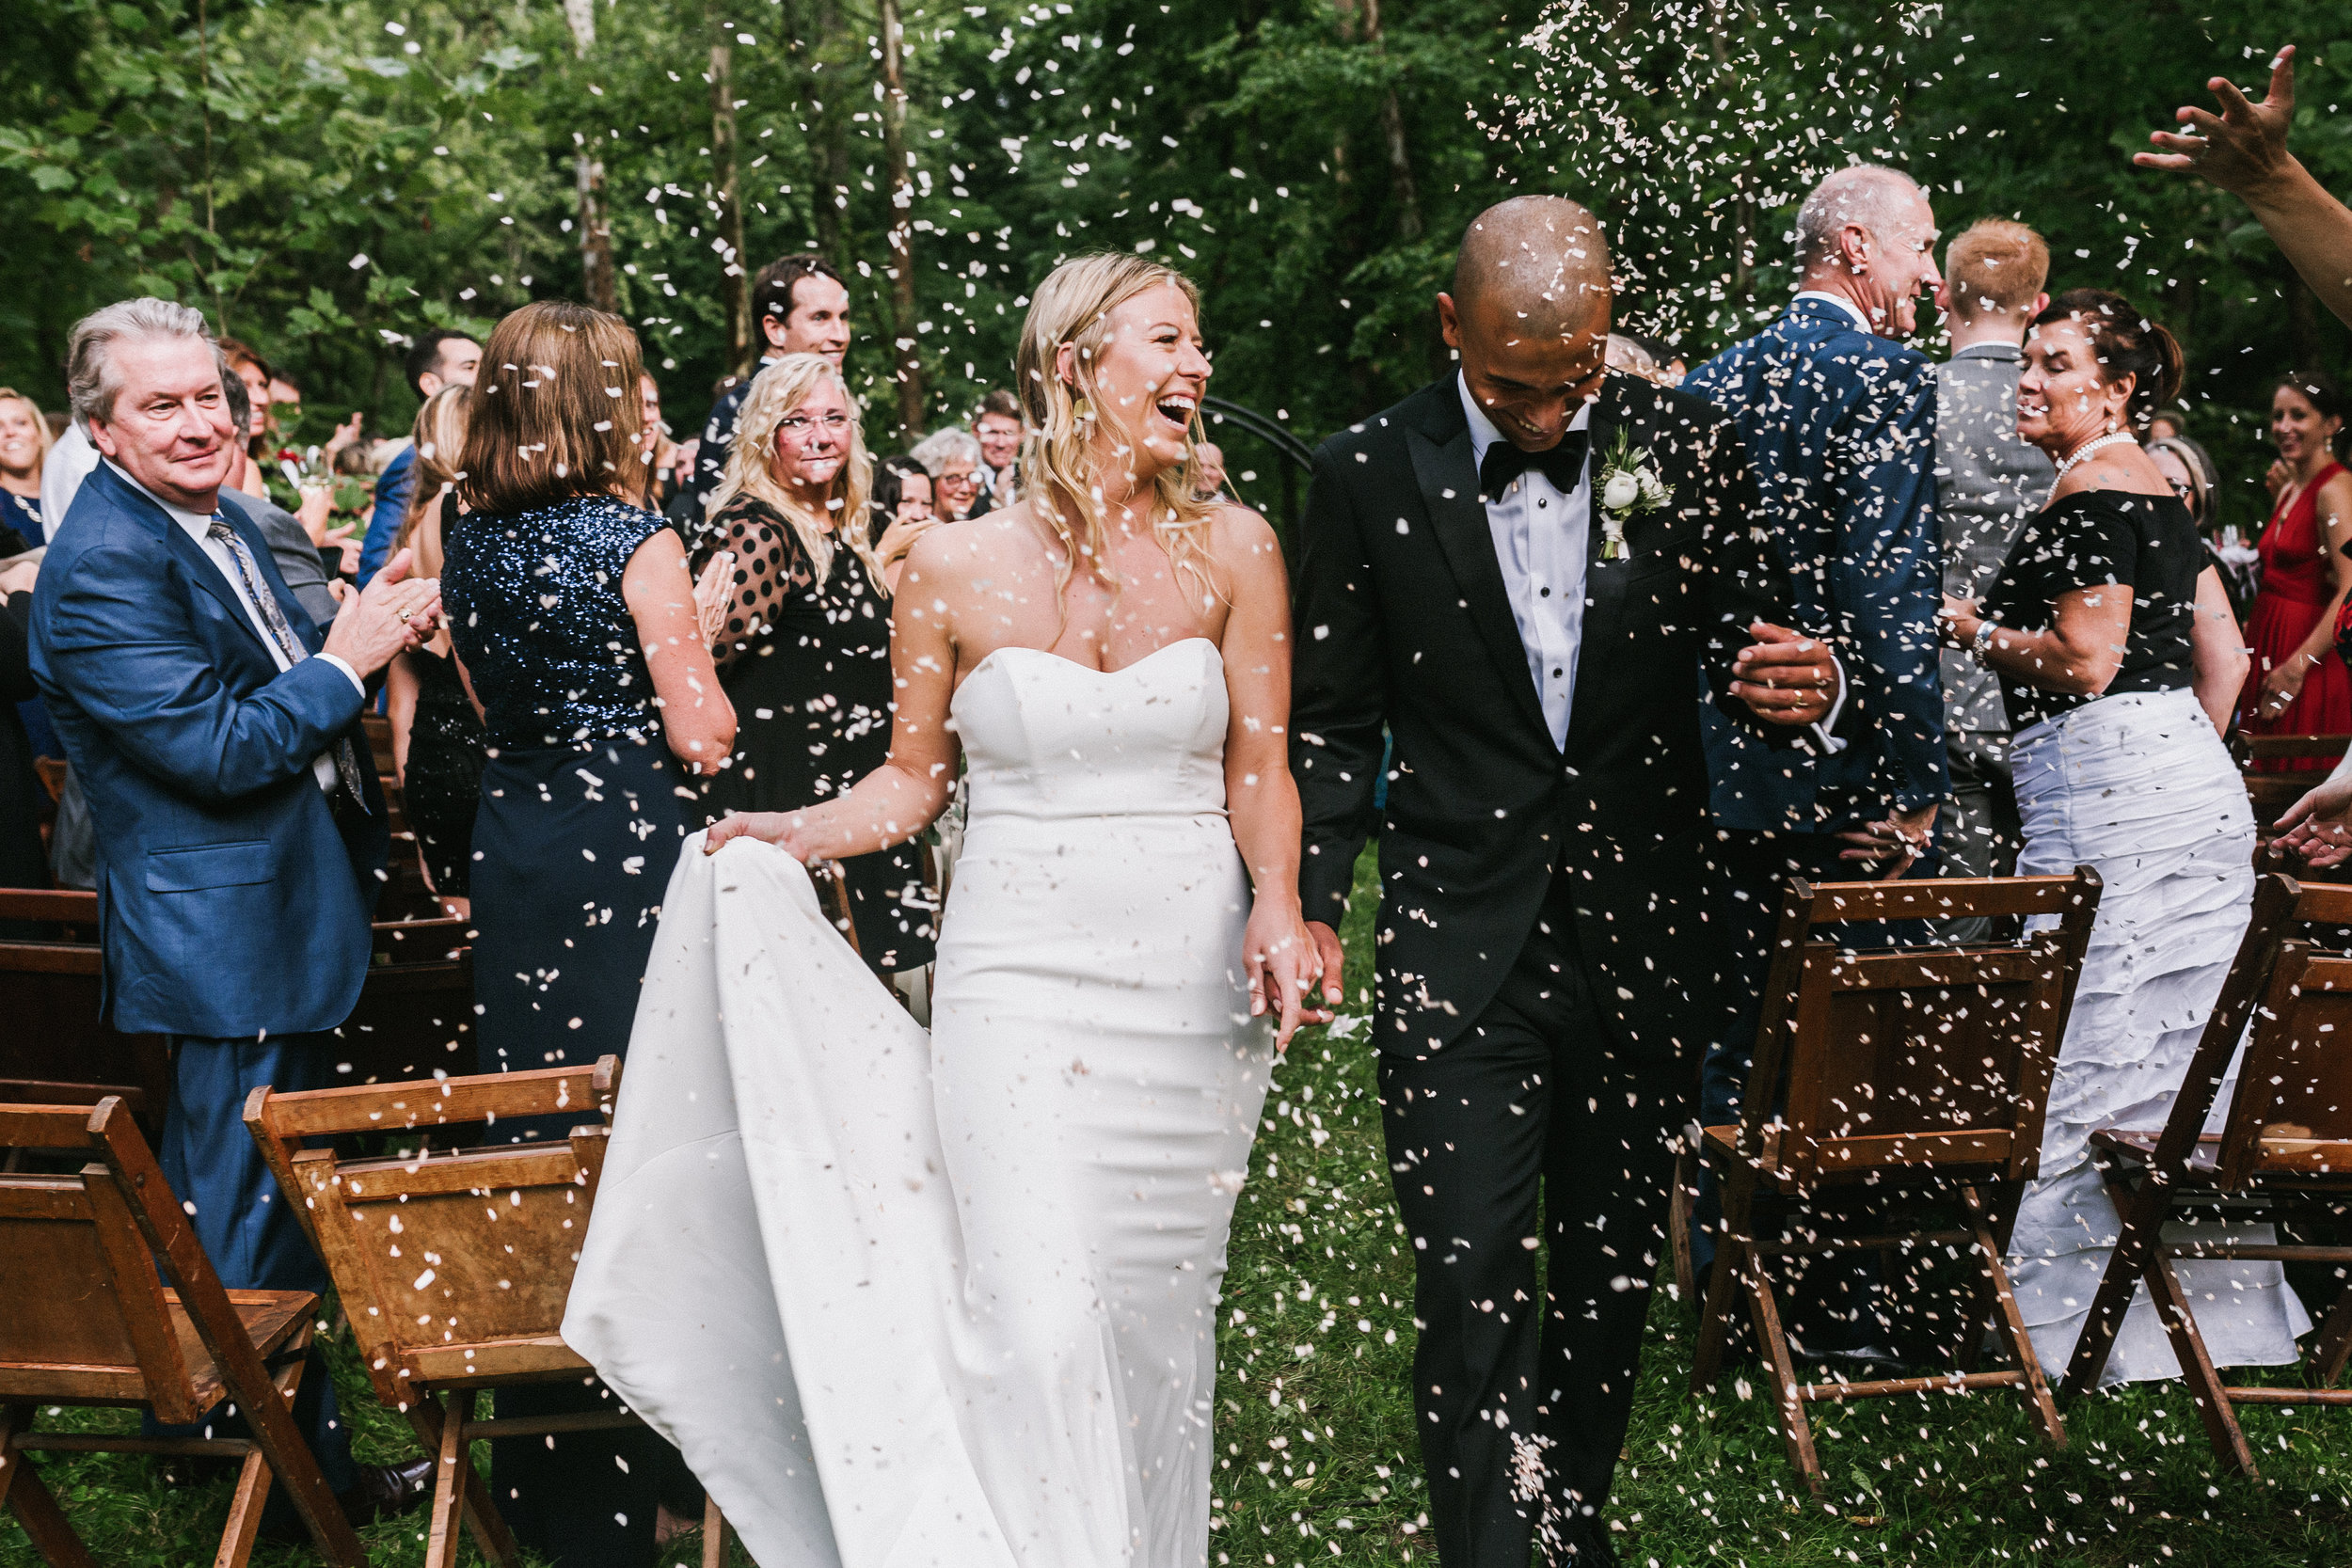 dayton-backyard-wedding-confetti-toss-outdoor-ceremony.jpg